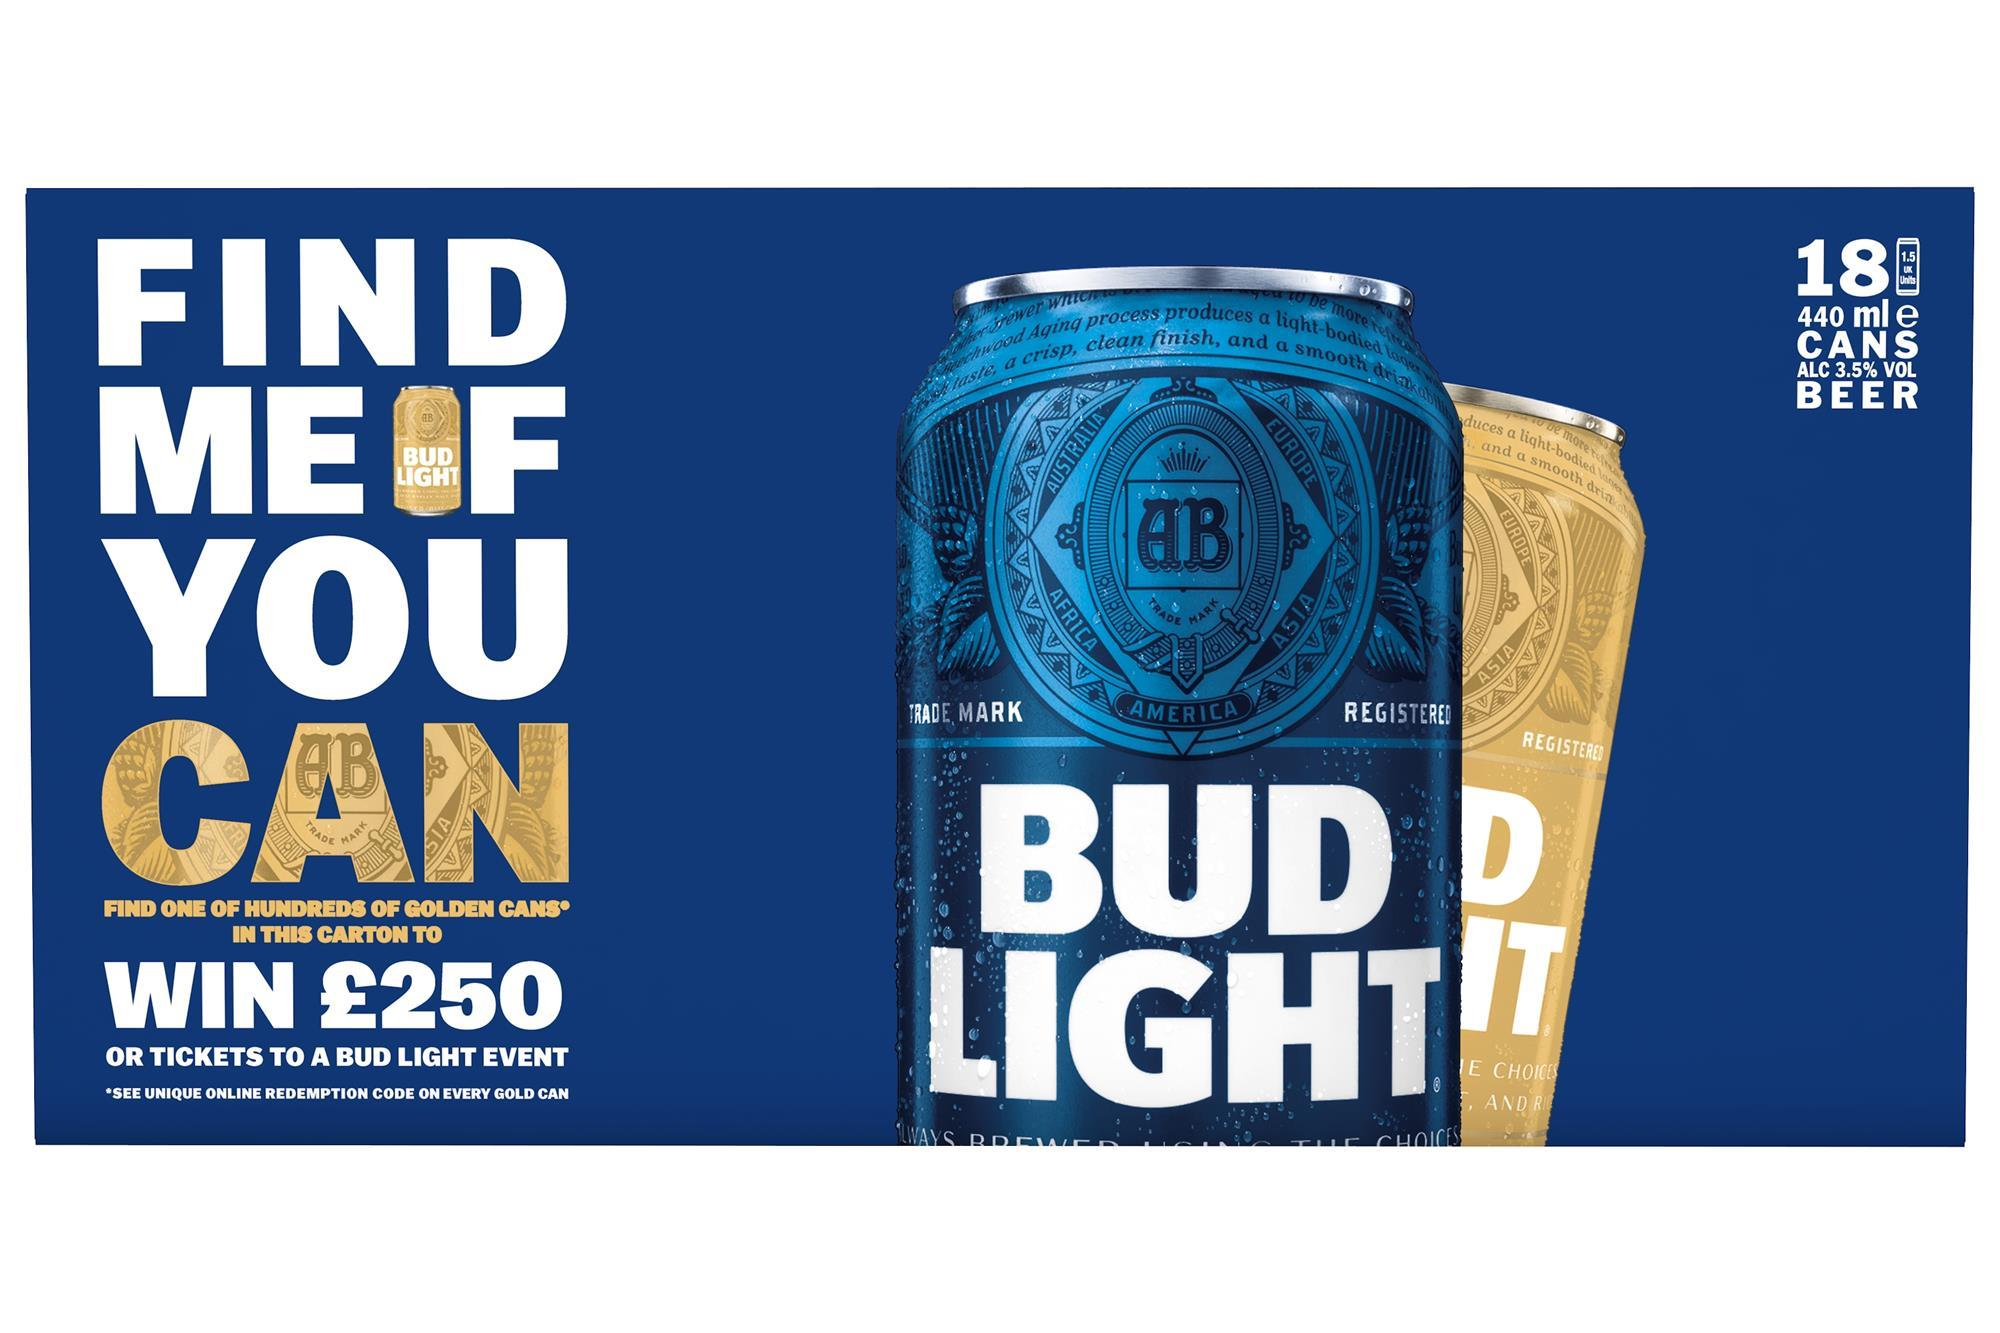 Bud Light kicks off 'The Golden Can: Find Me If You Can